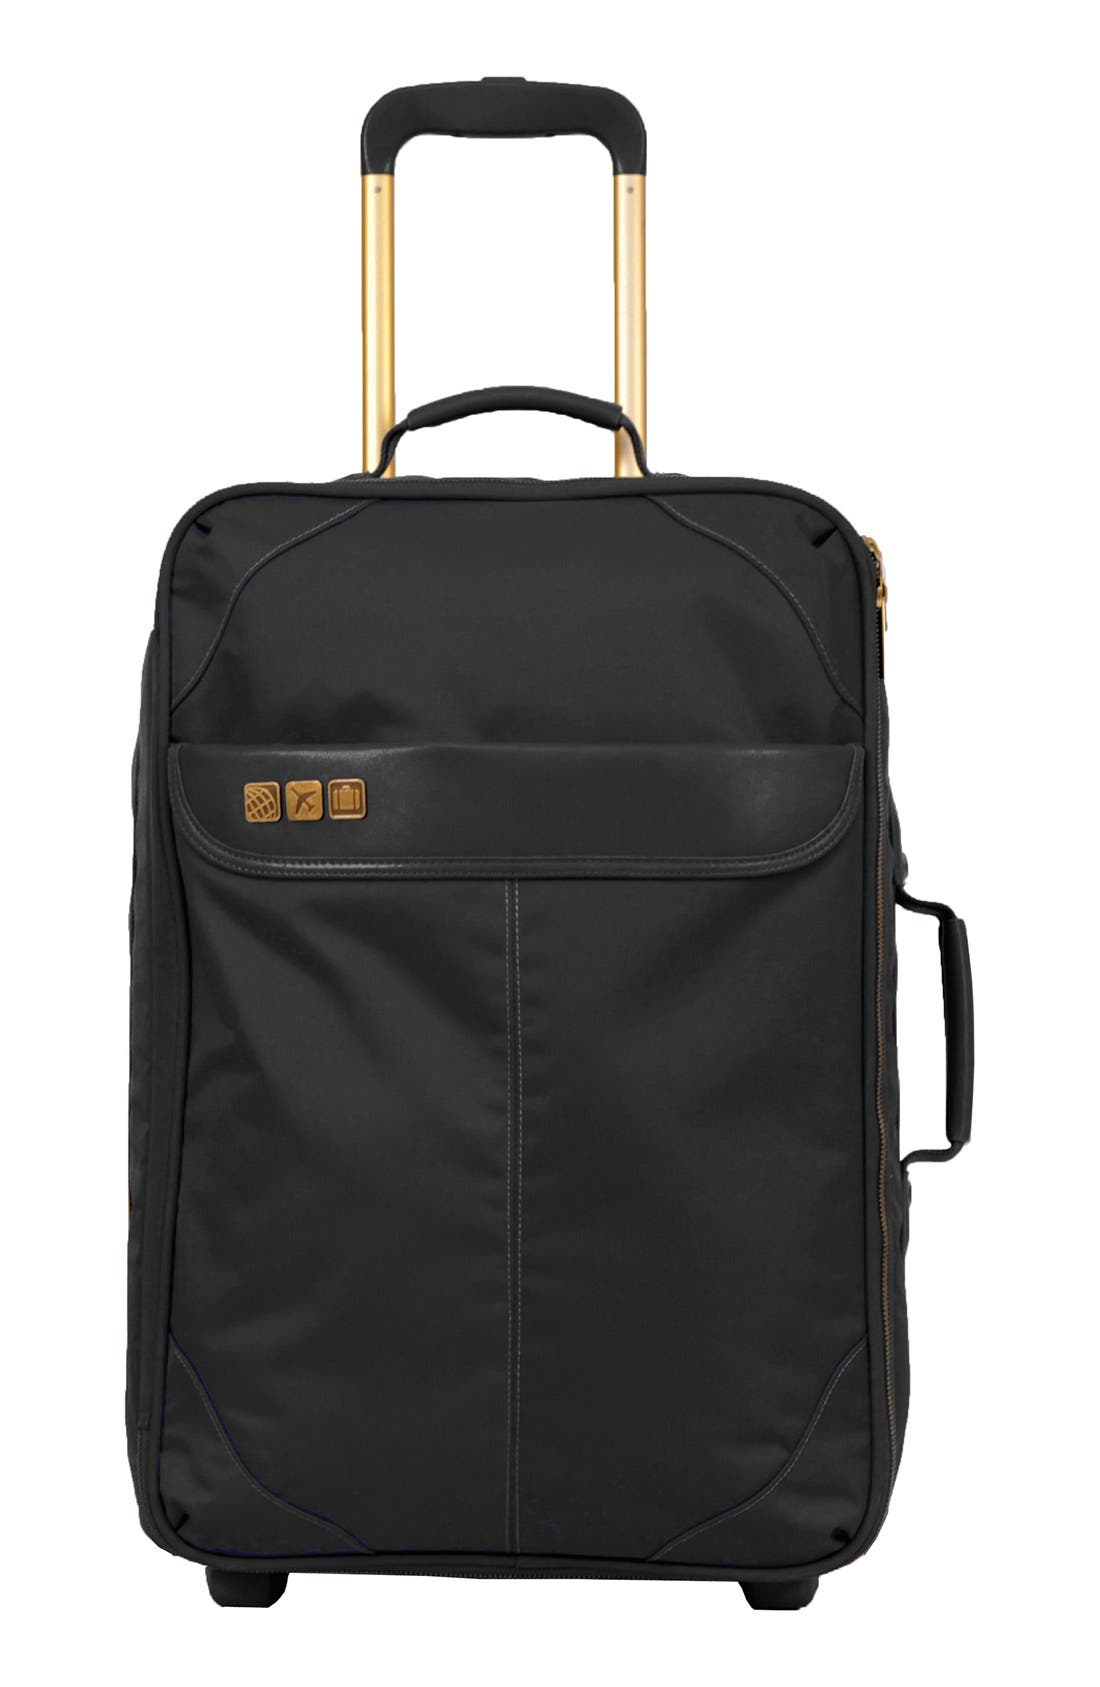 Main Image - FLIGHT 001 'Avionette' Rolling Carry-On Suitcase (22 Inch)